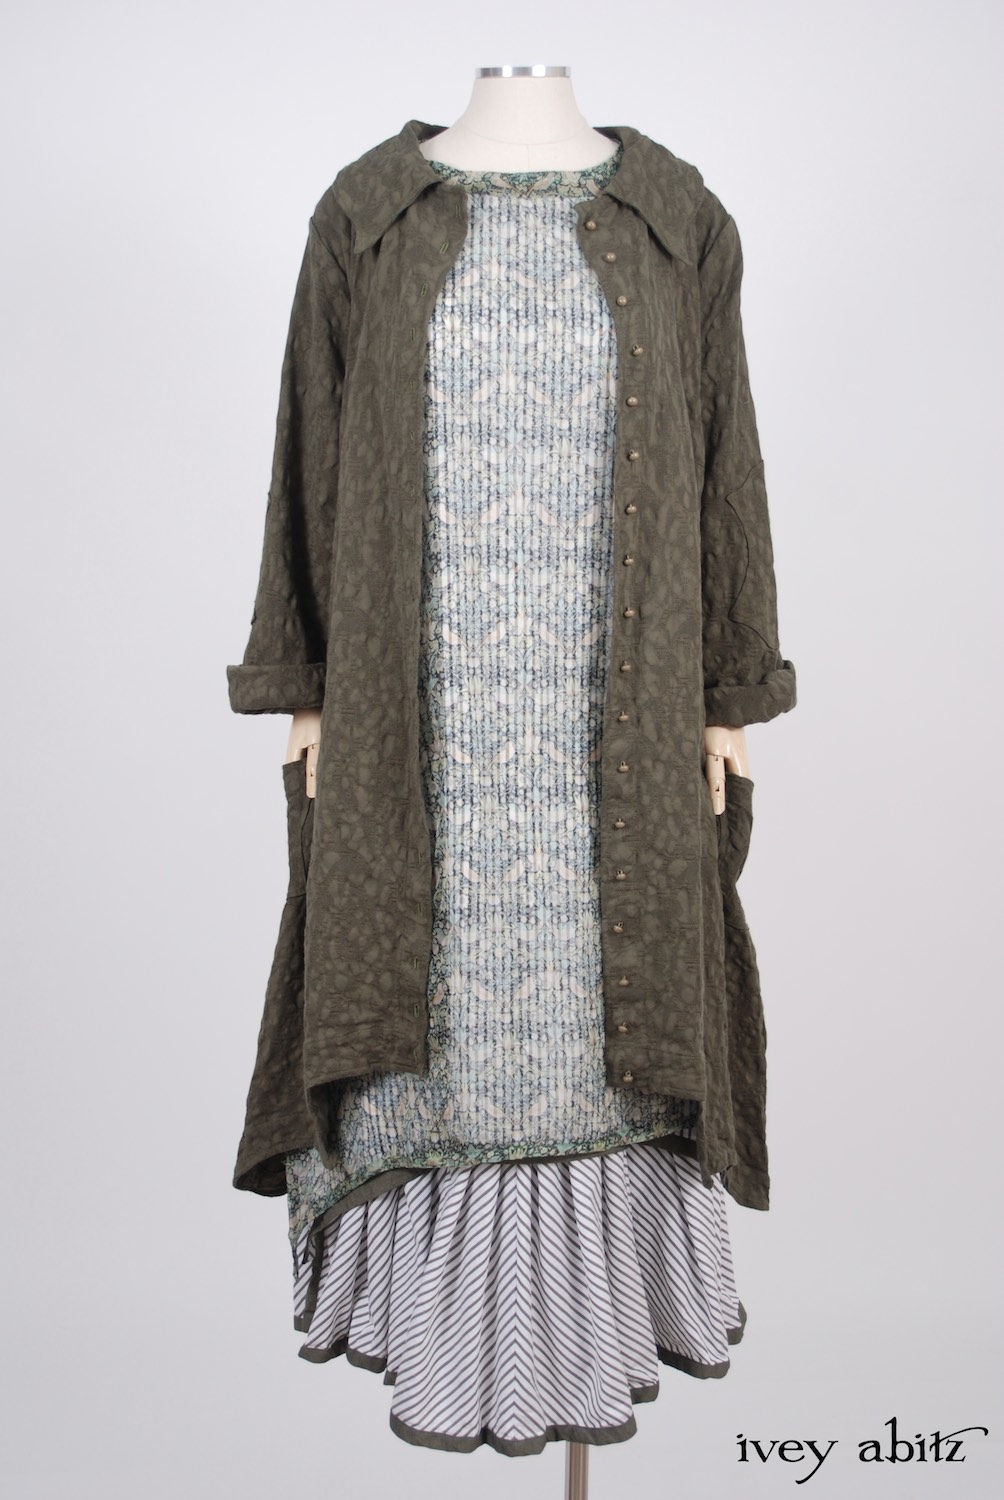 Ivey Abitz - Chittister Duster Coat in Morning Meadow Hemstitch Jacquard  - Wildefield Frock in Bird and Vine Silk Organza  - Limited Edition Striped Blanchefleur Frock in Morning Meadow Striped Cotton, High Water Length